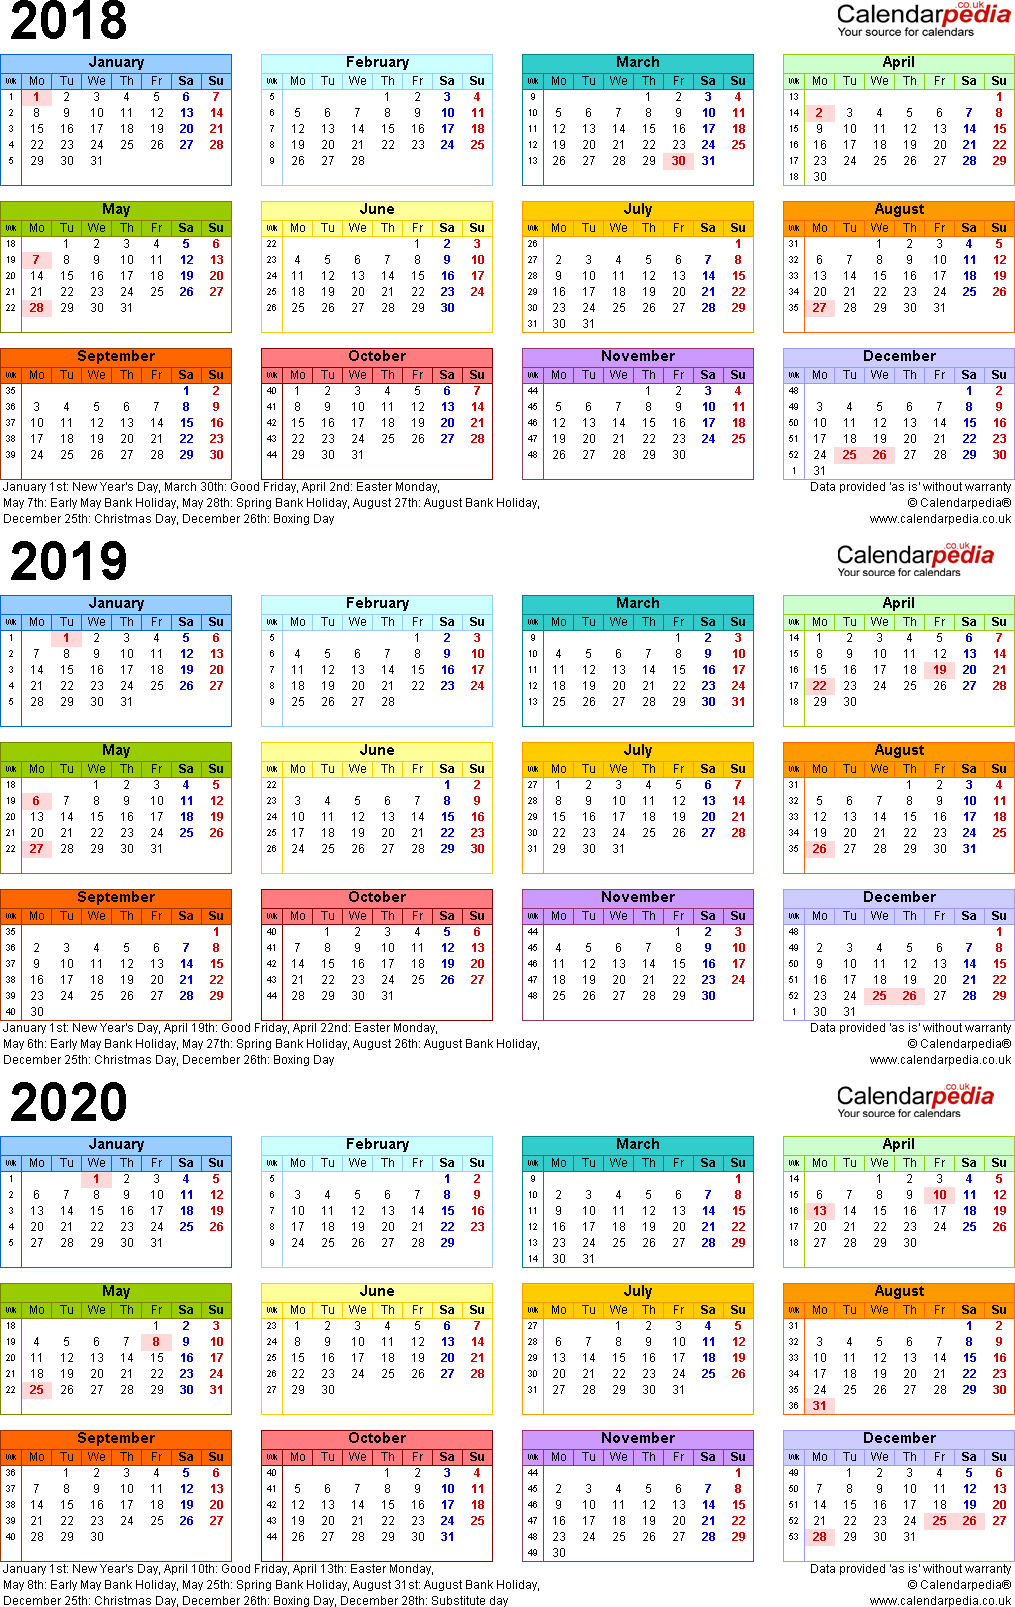 Template 3: Excel template for three year calendar 2018-2020 in colour (portrait orientation, 1 page, A4)